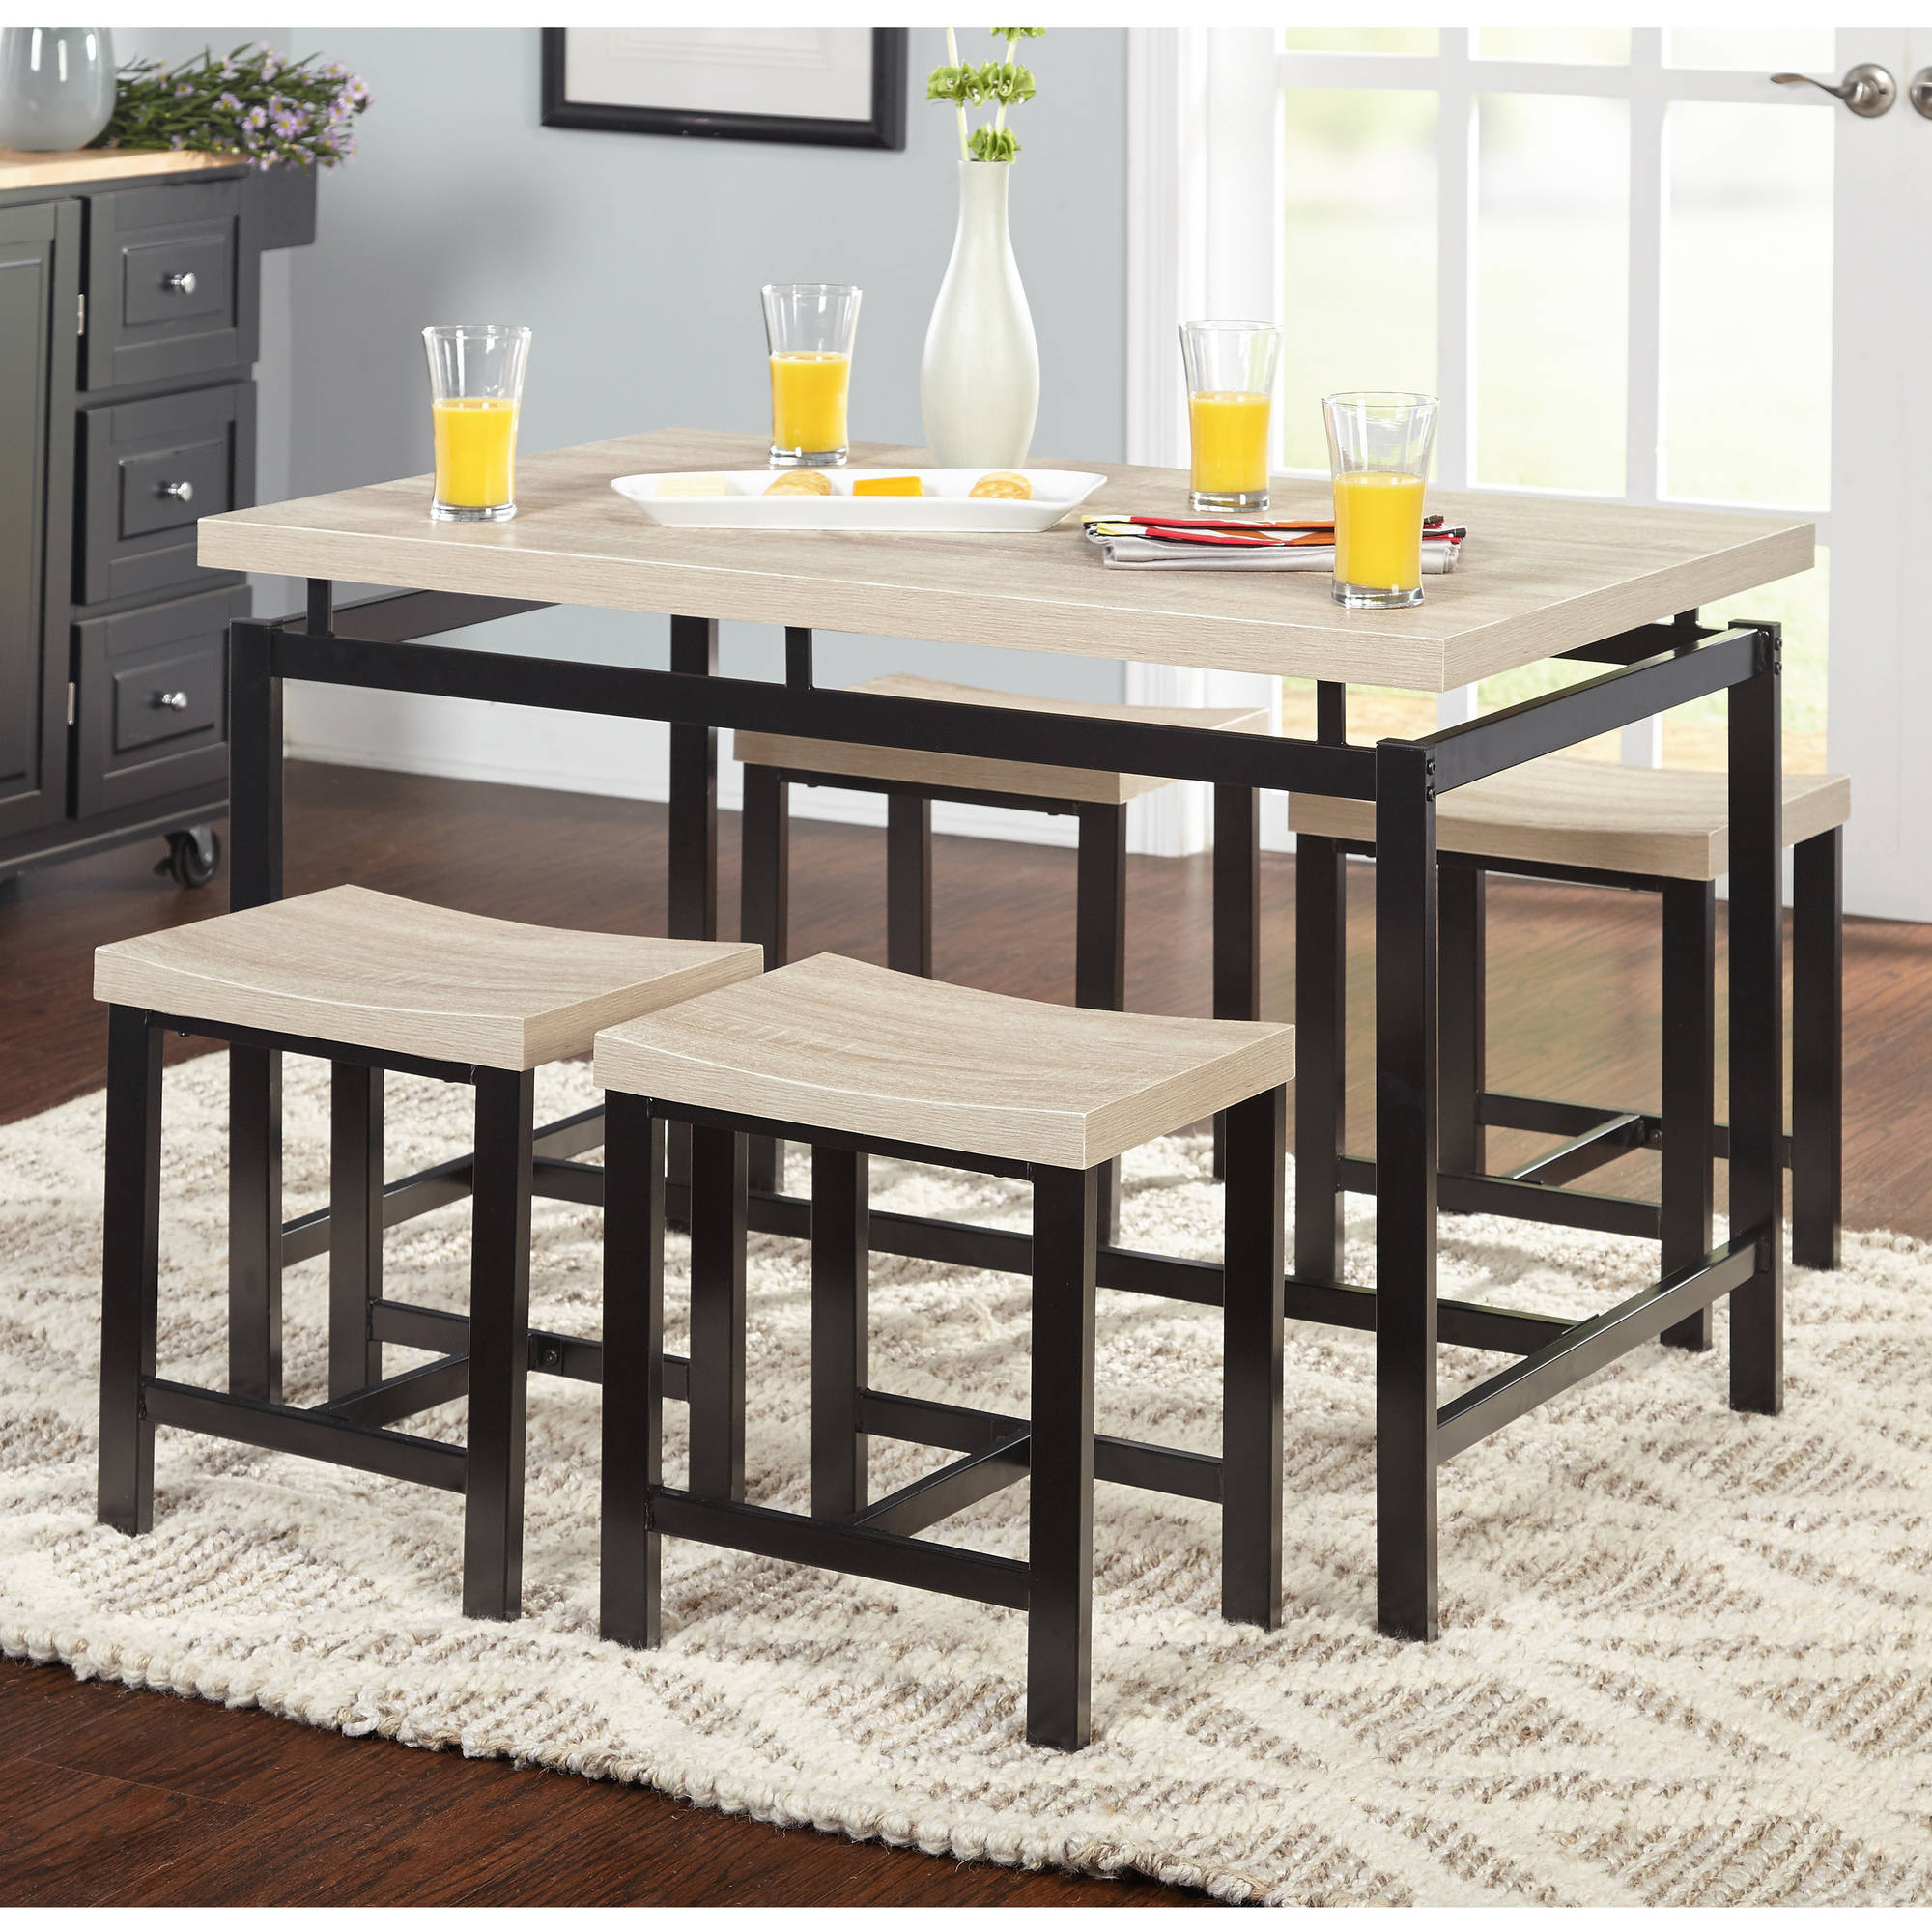 5 Piece Delano Dining Set Natural